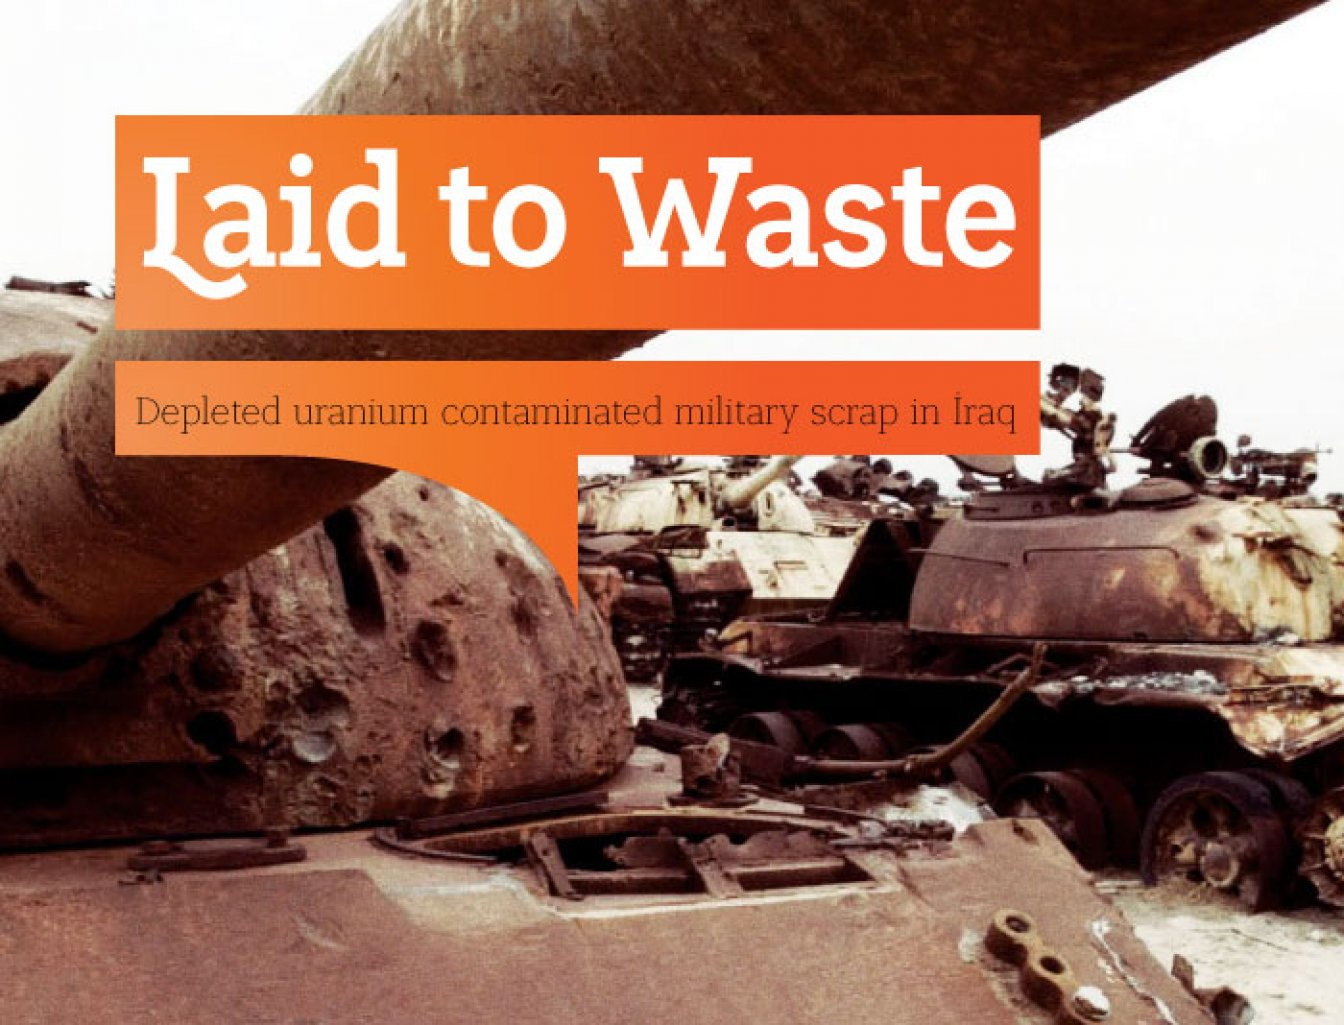 Laid to Waste, a report by Wim Zwijnenburg of PAX, details the difficulty of limiting civilian exposure to DU in the absence of reliable information about locations where it was used and the